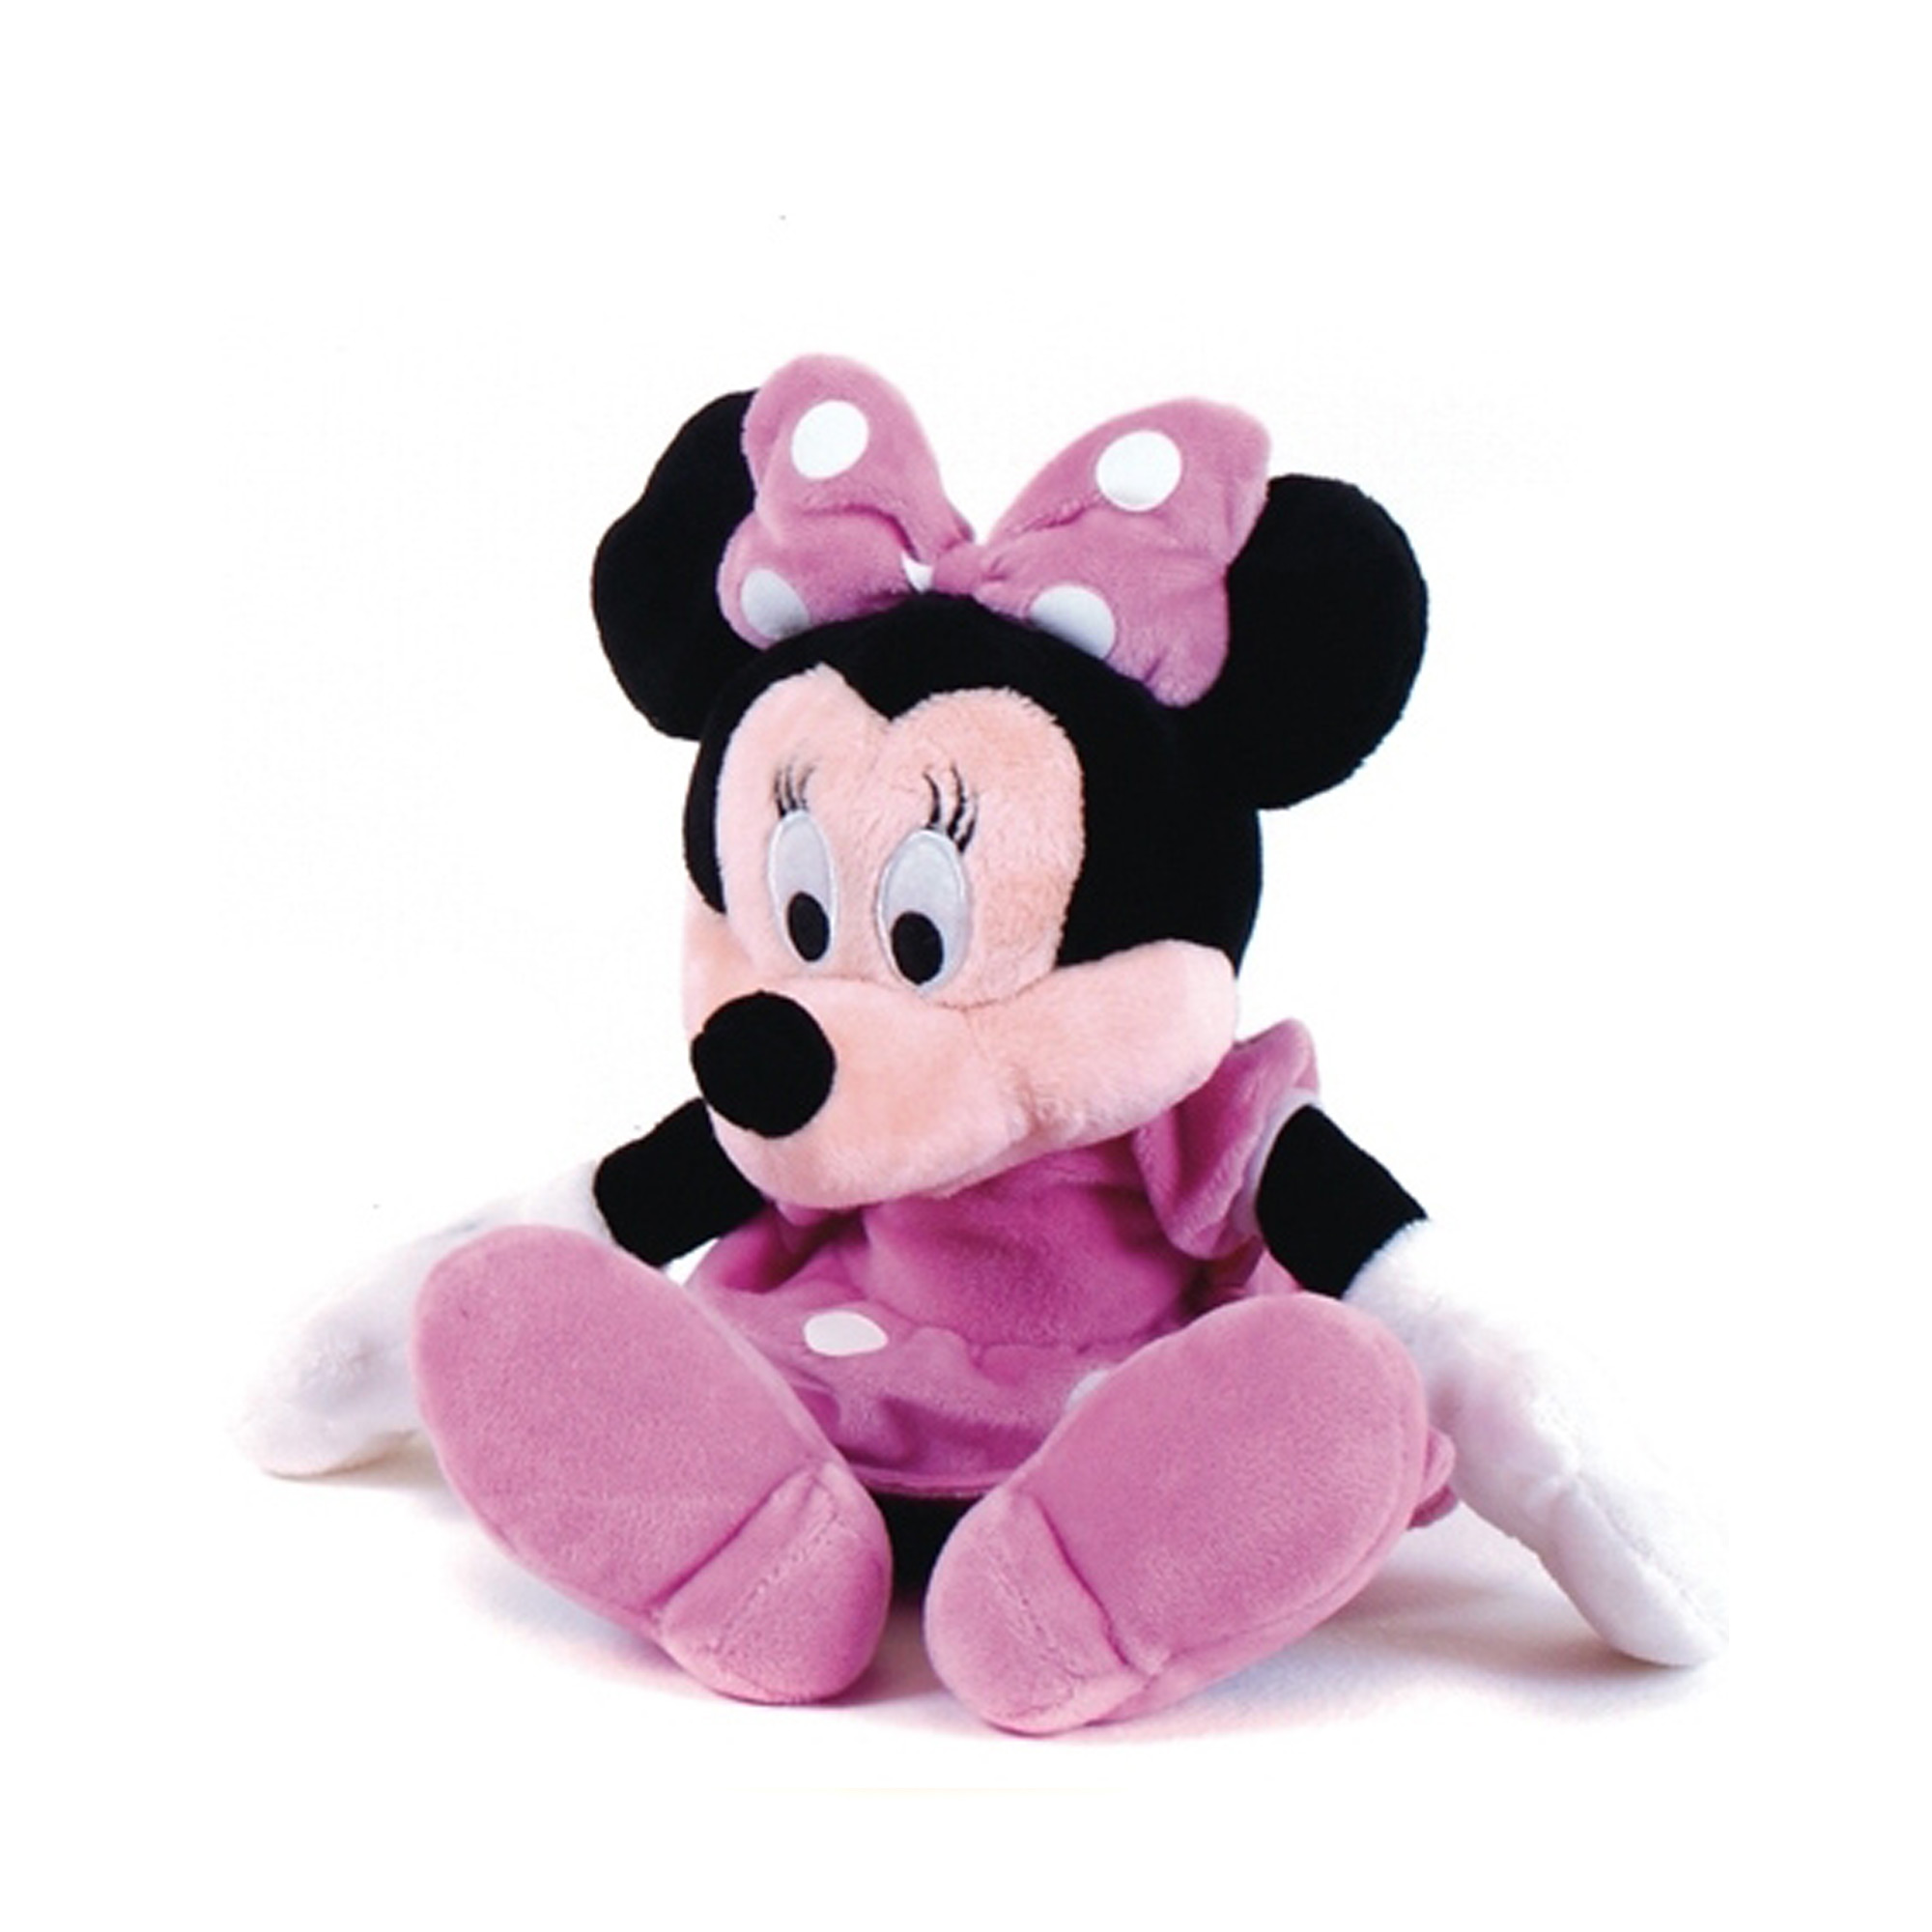 Disney Giant Minnie Mouse